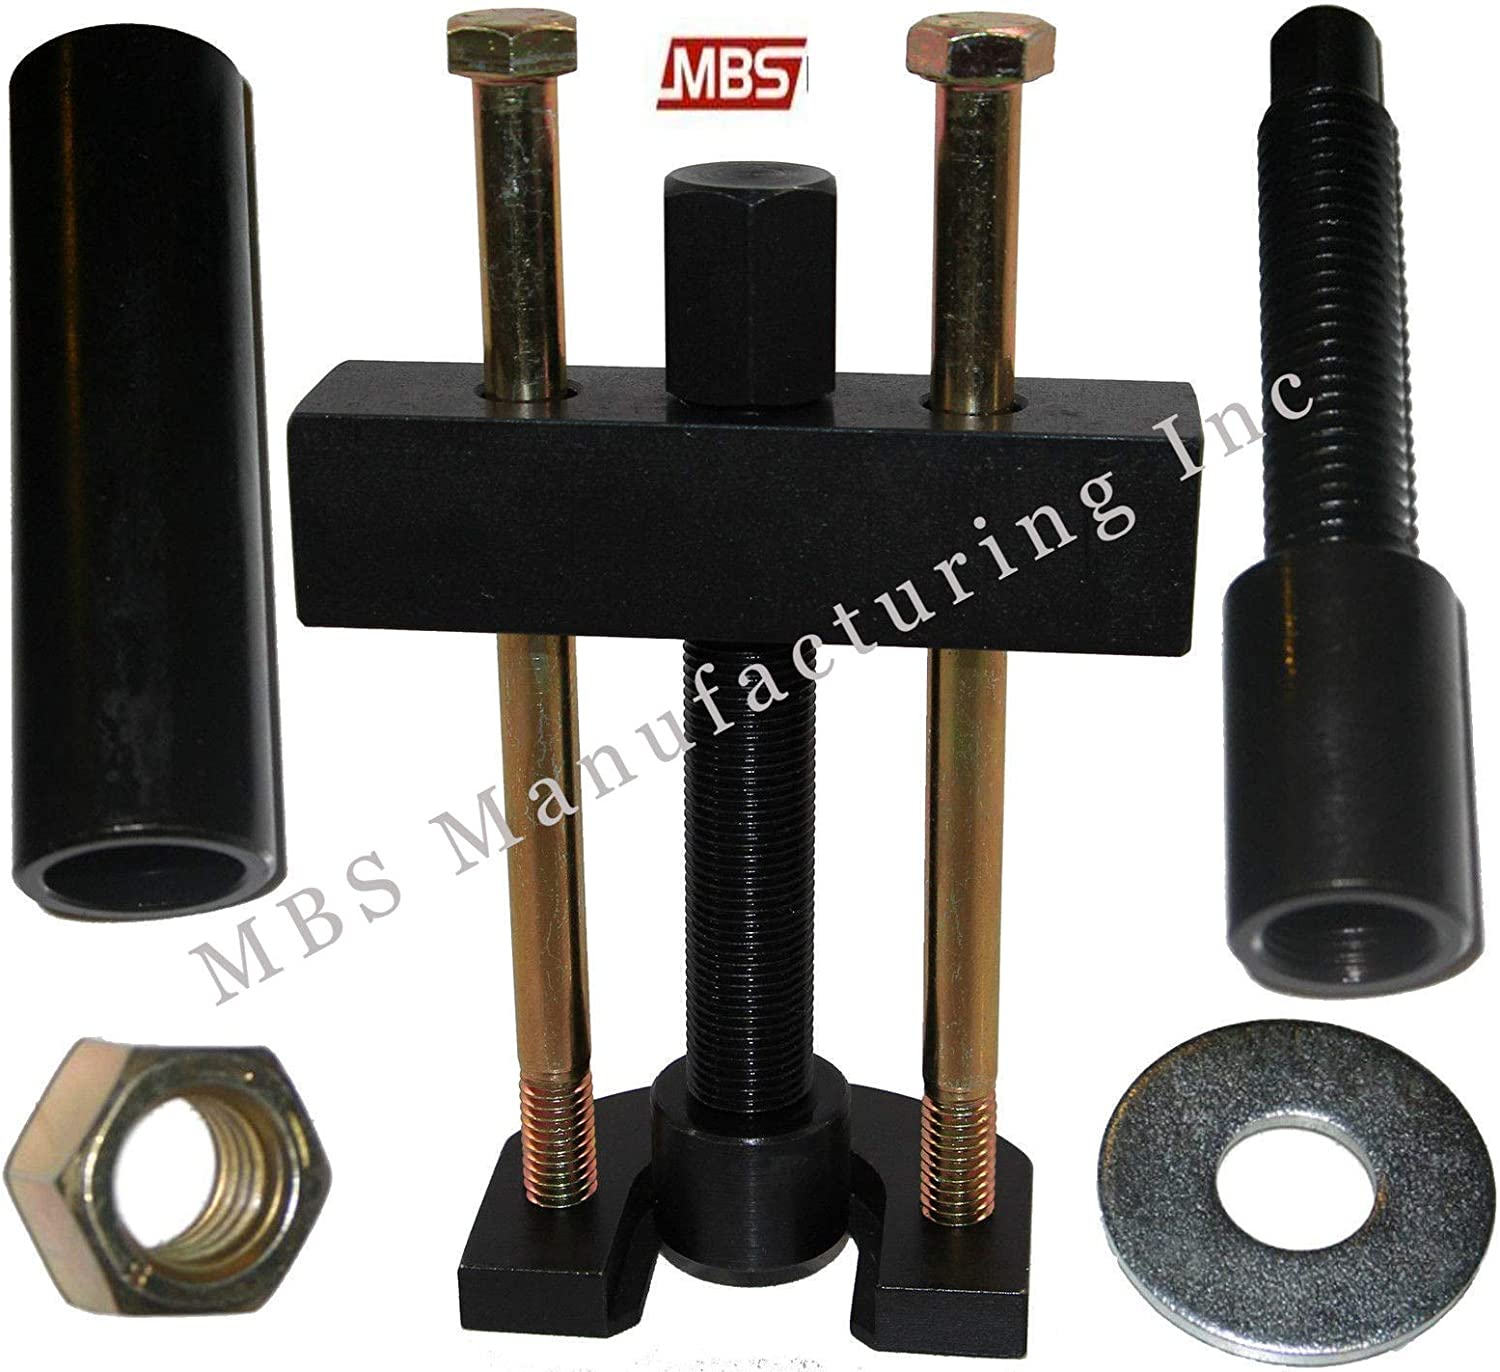 MBS Mfg Harley Davidson Big Twin 5 and 6 Speed Transmission Mainshaft Inner Bearing Race Puller and Installer 1984-2006